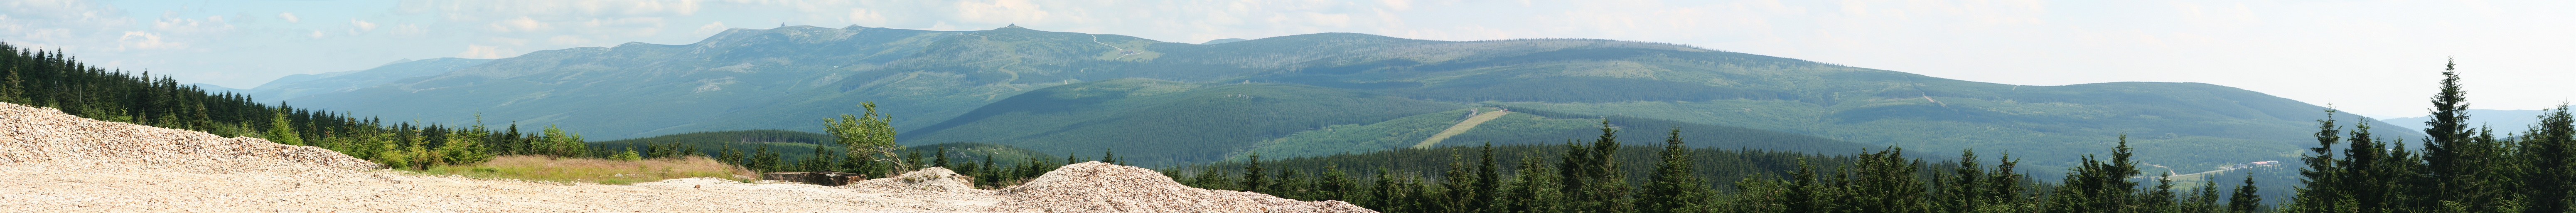 Panorama of the Karkonosze (Giant Mountains) from the 'Stanislaw' open-pit quartz mine in the Izera Mountains